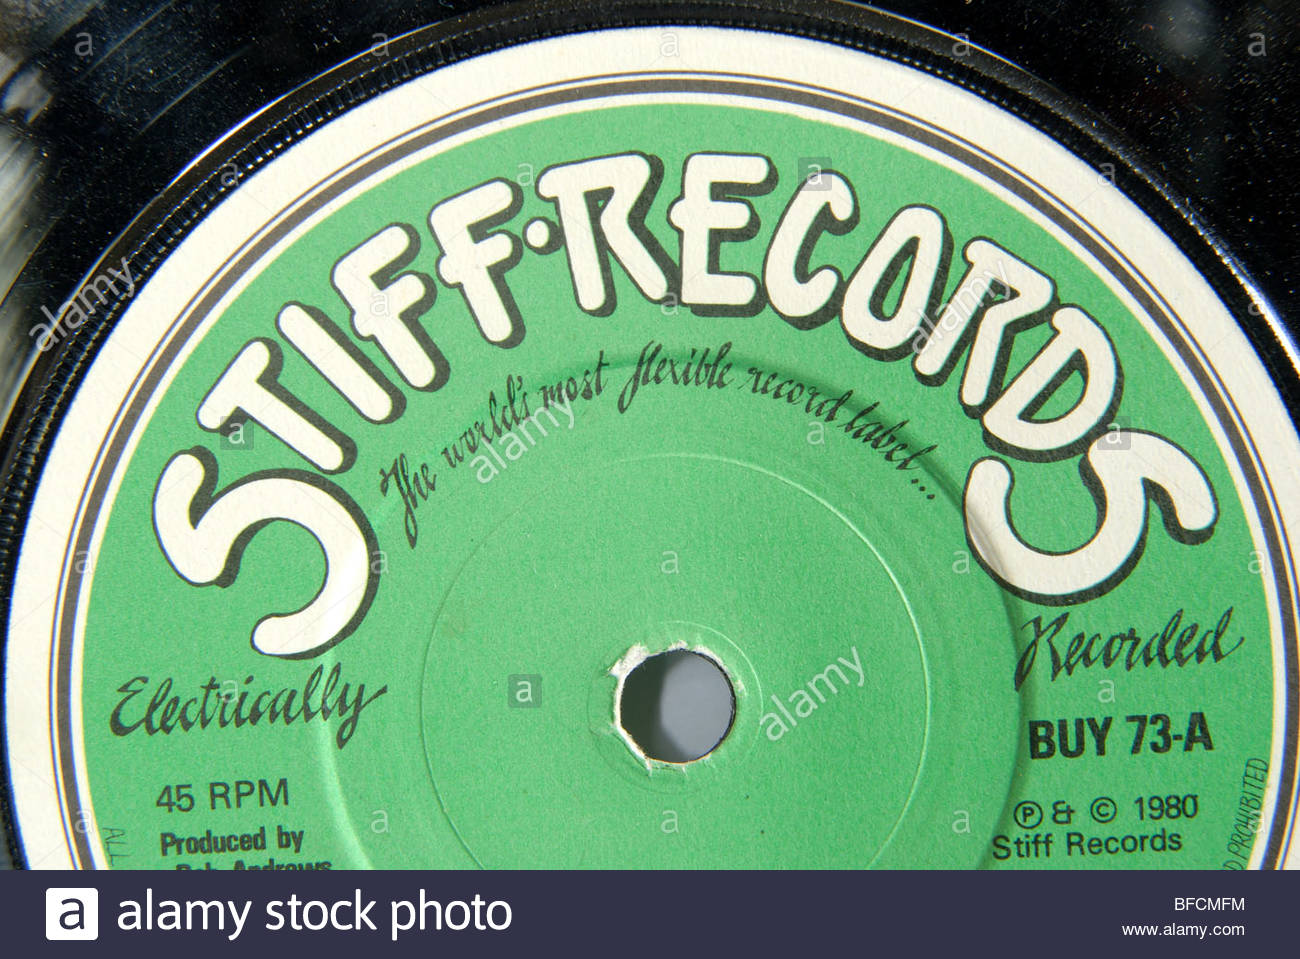 Label of an Stiff records 45 rpm record. - Stock Image